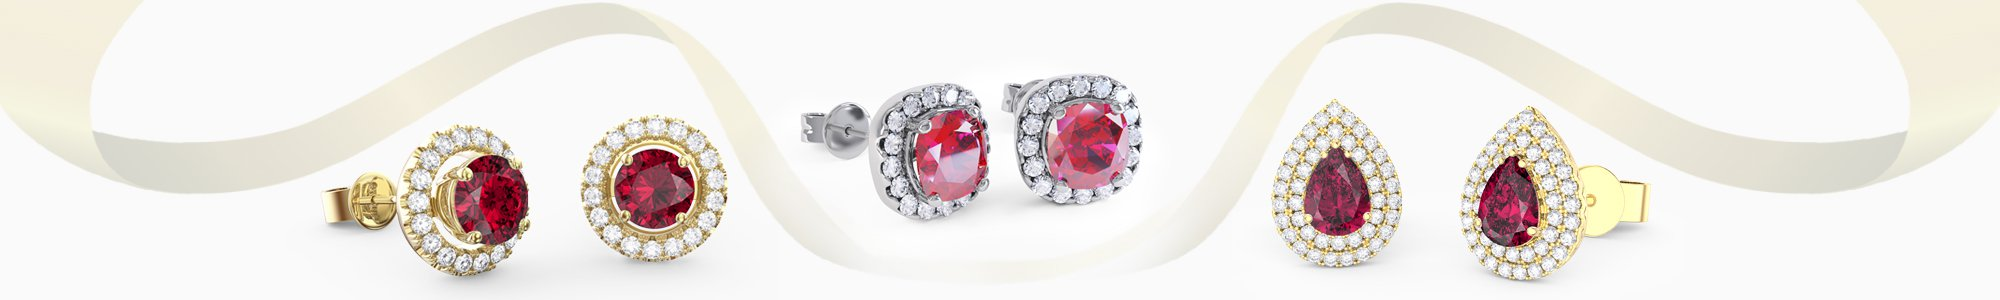 Shop Ruby Earrings by Jian London. Buy direct and save from our wide selection of Ruby Earrings at the Jian London jewellery Store. Free UK Delivery